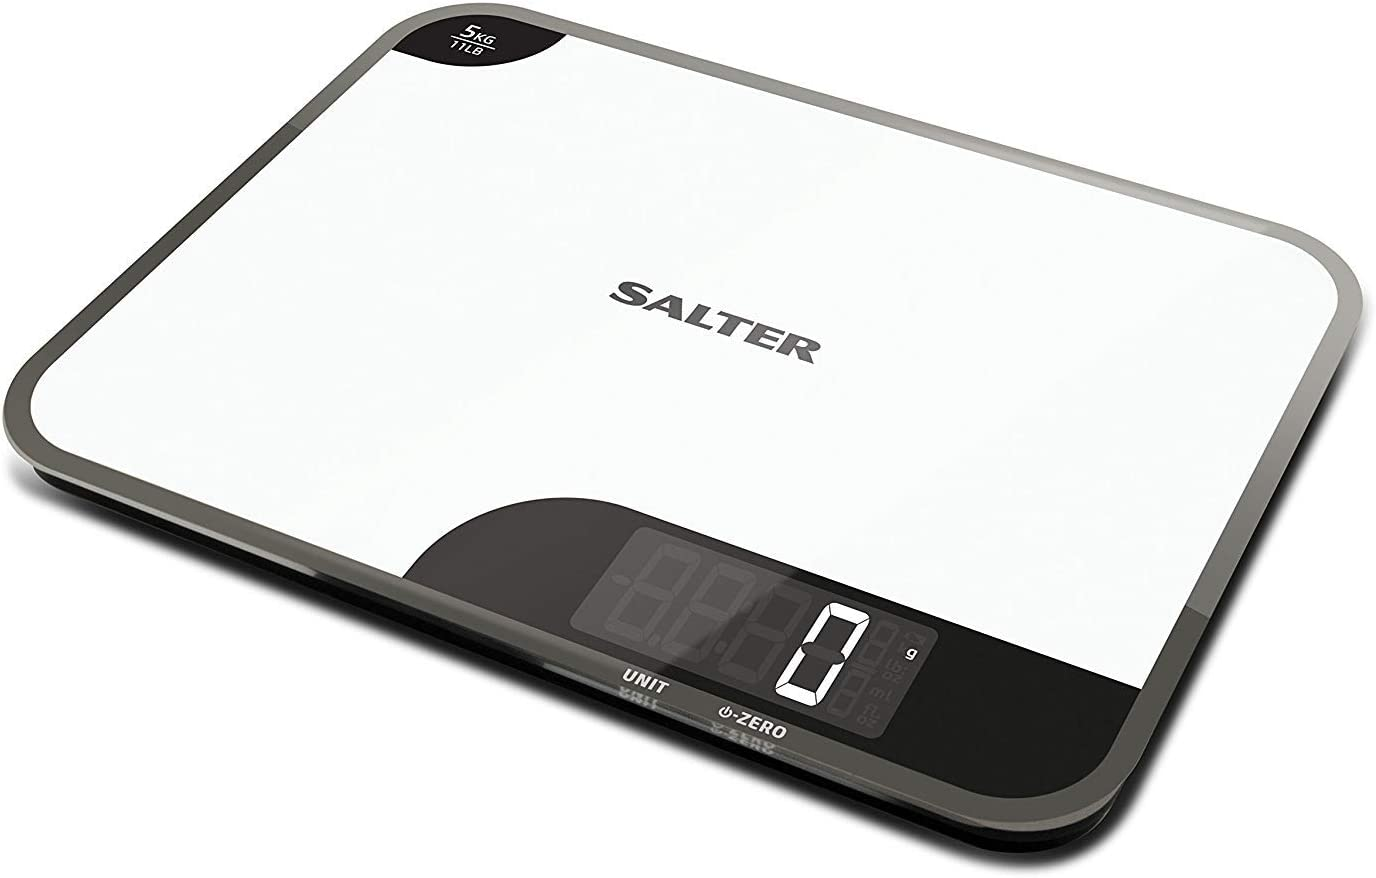 Salter Mini-Max Kitchen Scales, Small + Practical, Measure Food / Ingredients Weight, Weigh up to 5kg, Metric + Imperial, g oz ml fl.oz. Stylish Design, Easy Wipe Clean, 15 Year Guarantee - White